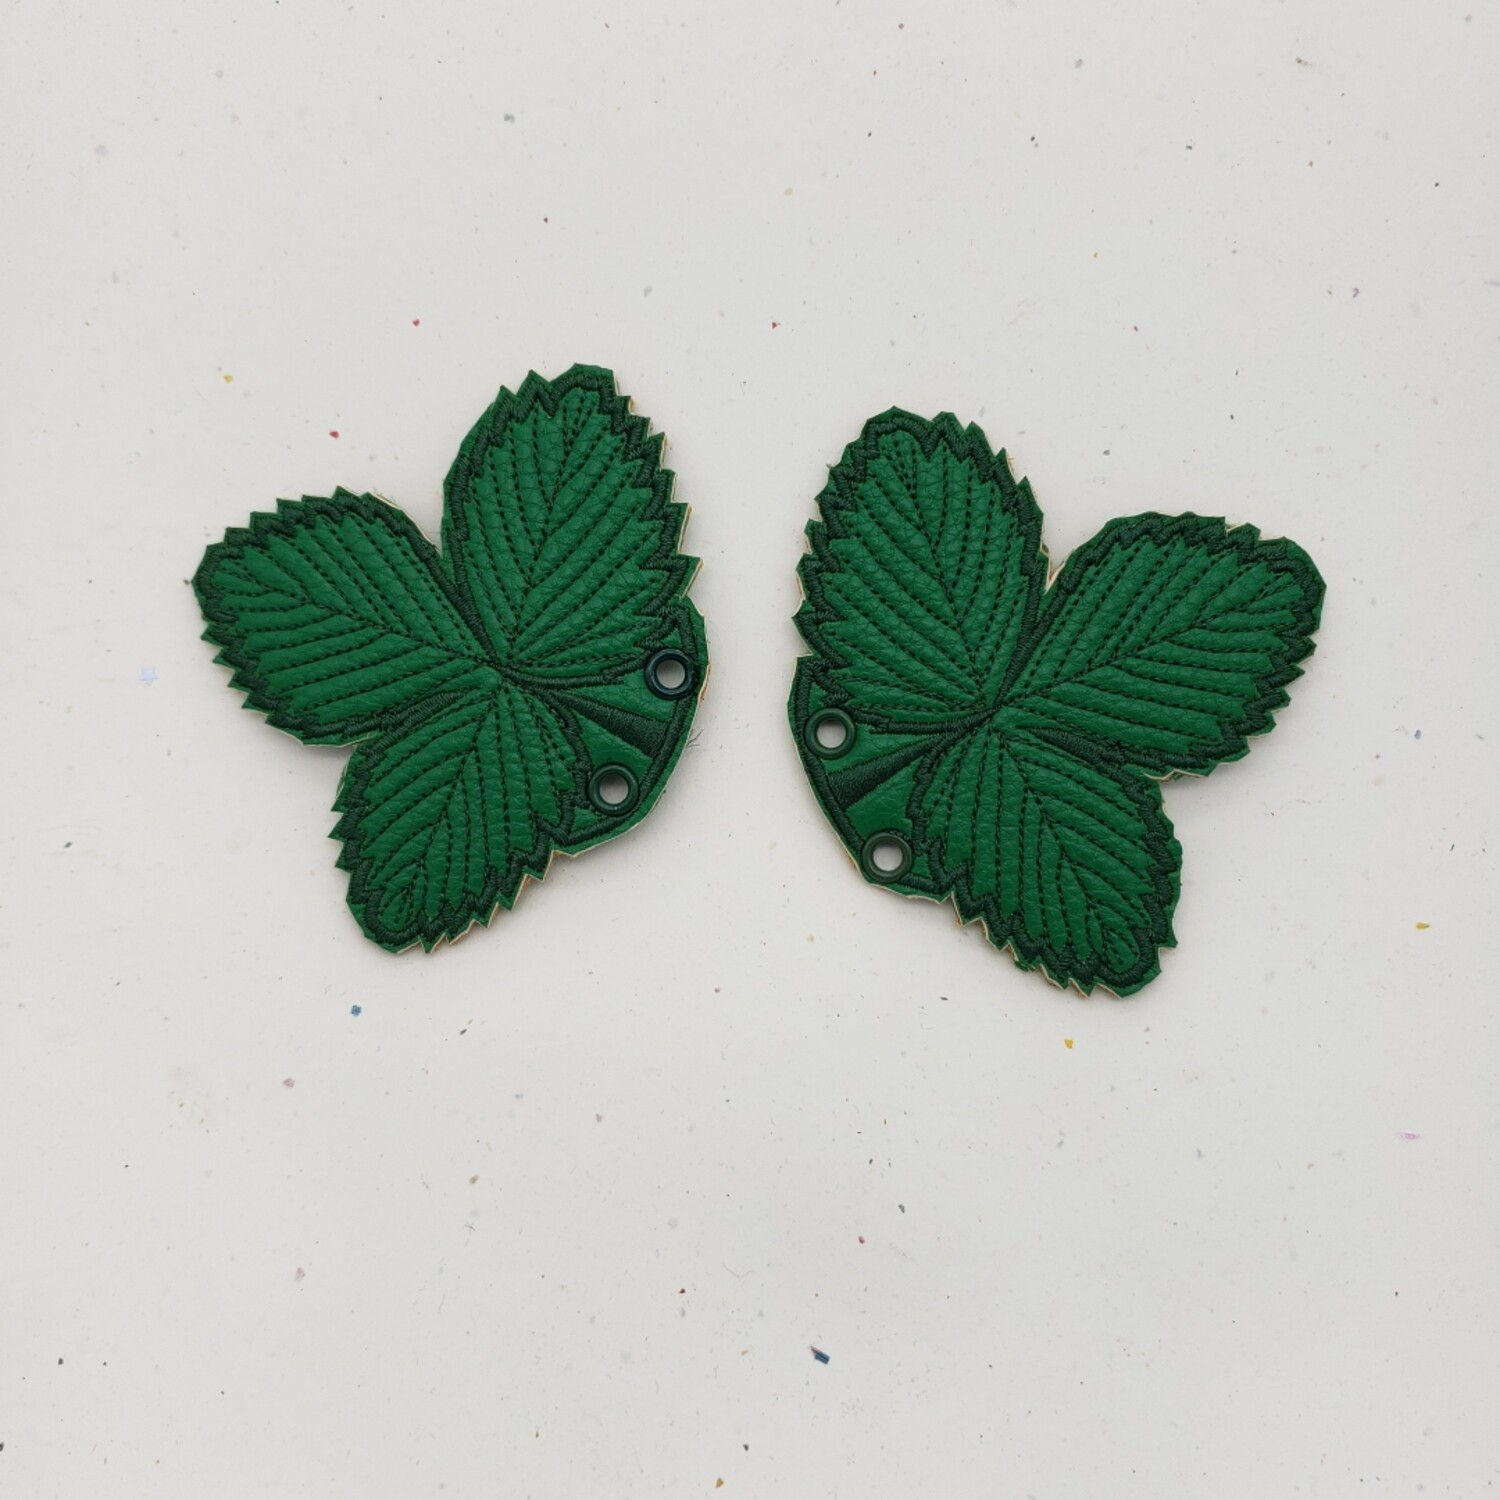 Strawberry leaf shoe wings in custom colors and thread options